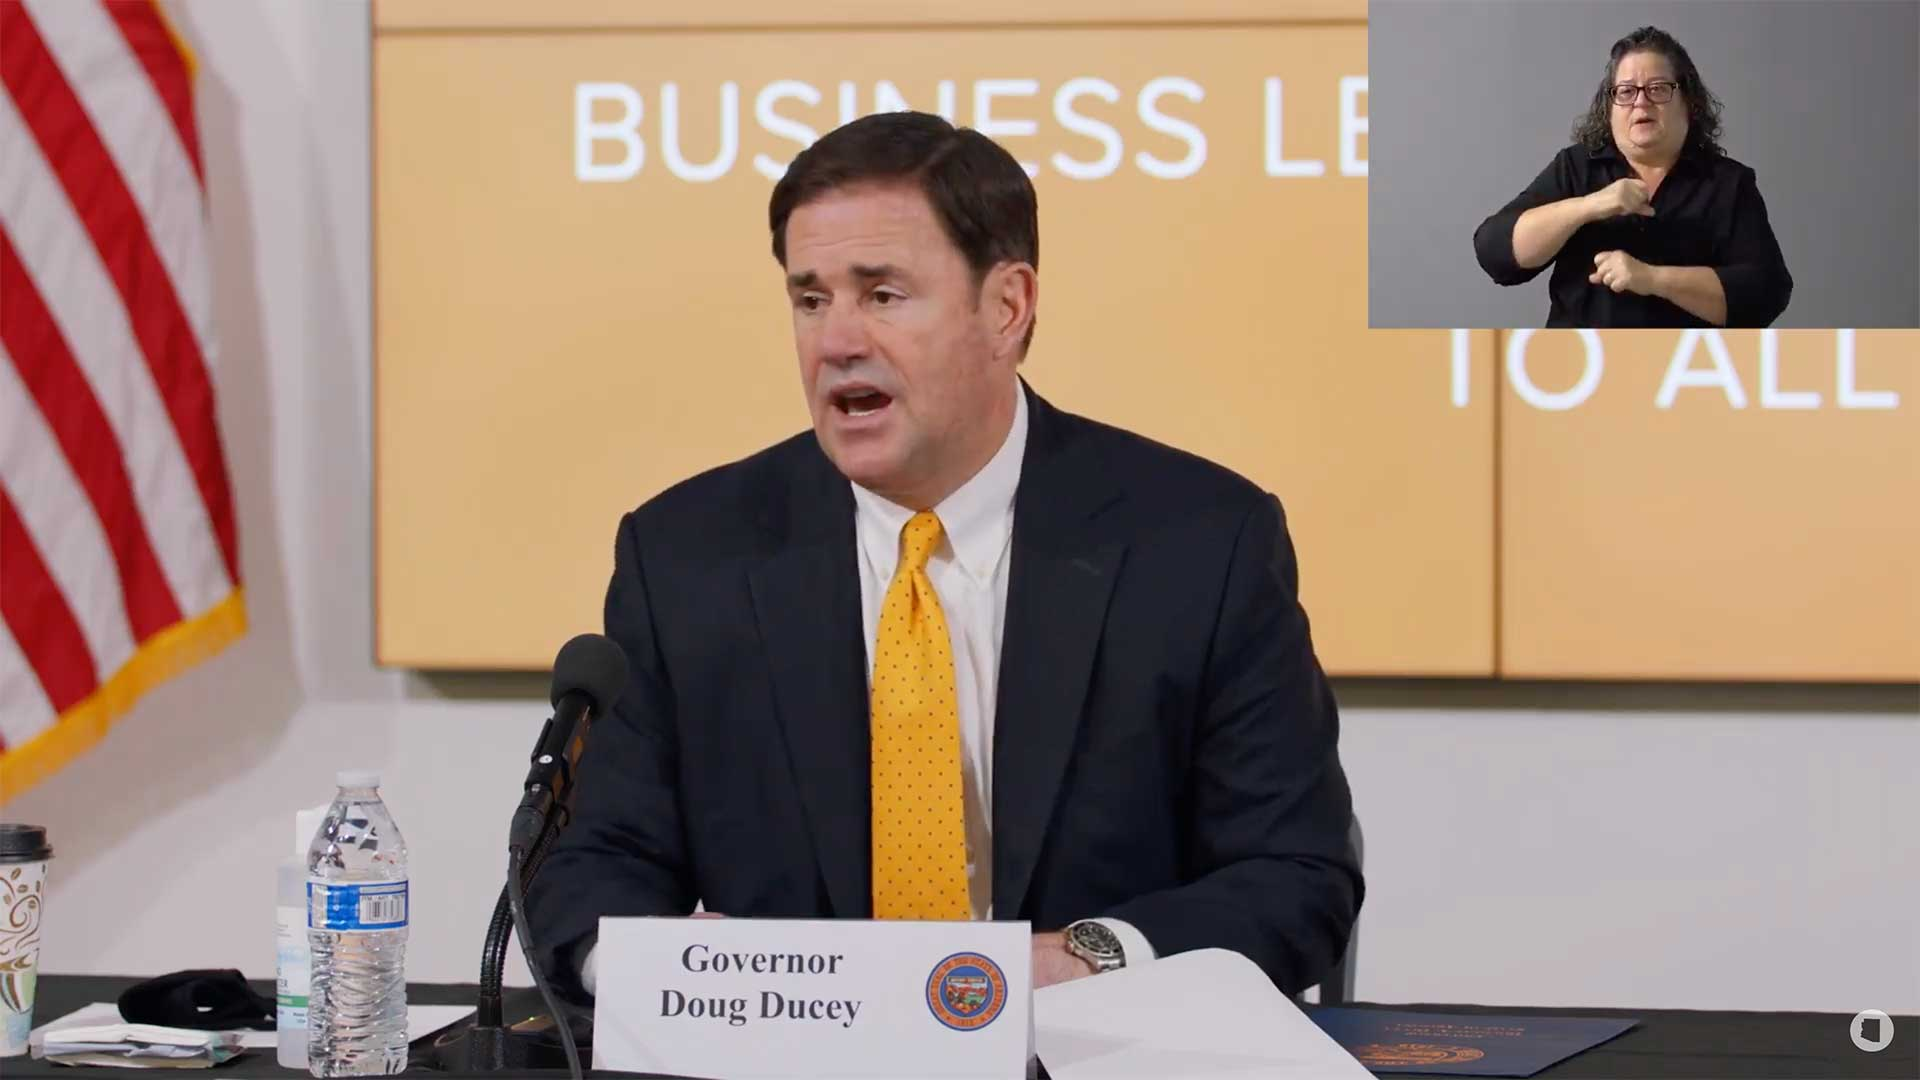 Gov. Doug Ducey at a July 23 media update on the state's coronavirus response.